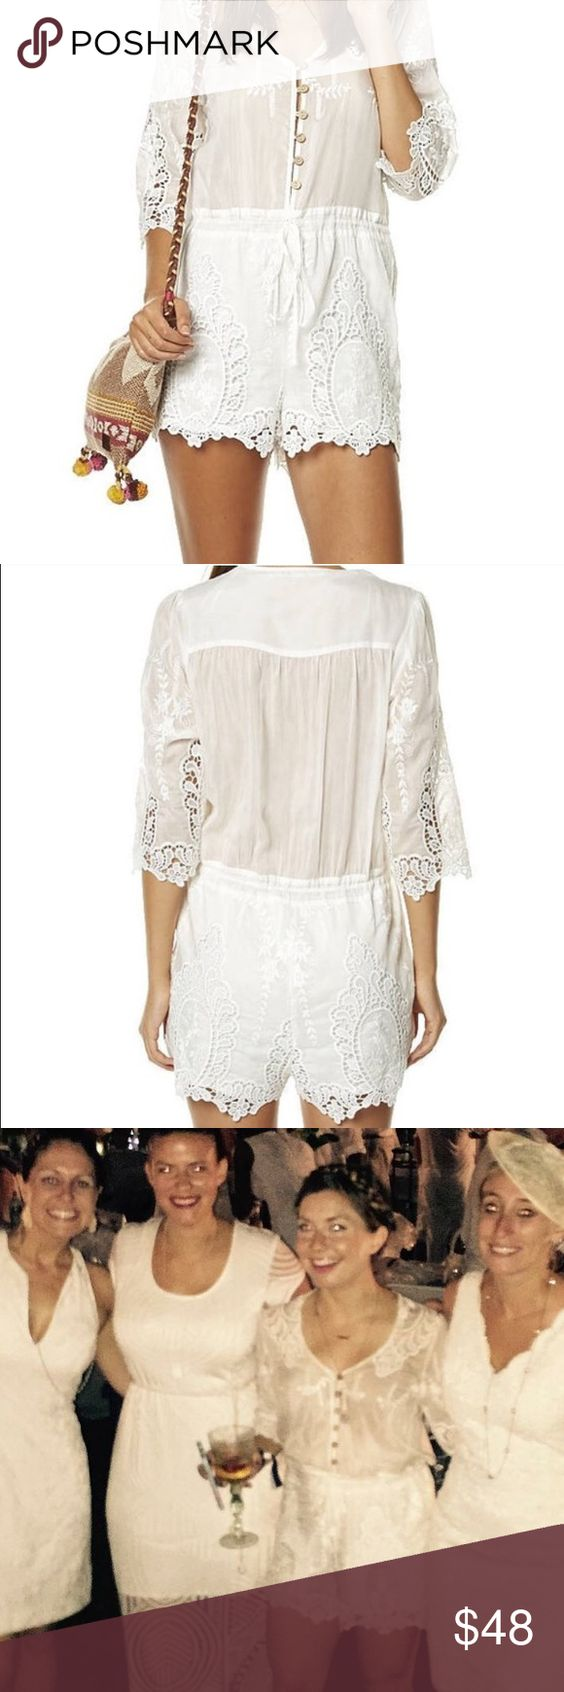 Ministry of Style White Lace Romper This romper is gorgeous - and will make you feel it, too. Worn once for a special event and had been sitting in my closet since! 70% cotton, 30% silk. Bottom is lined, drawstring waist for cinching. Ministry of Style Pants Jumpsuits & Rompers